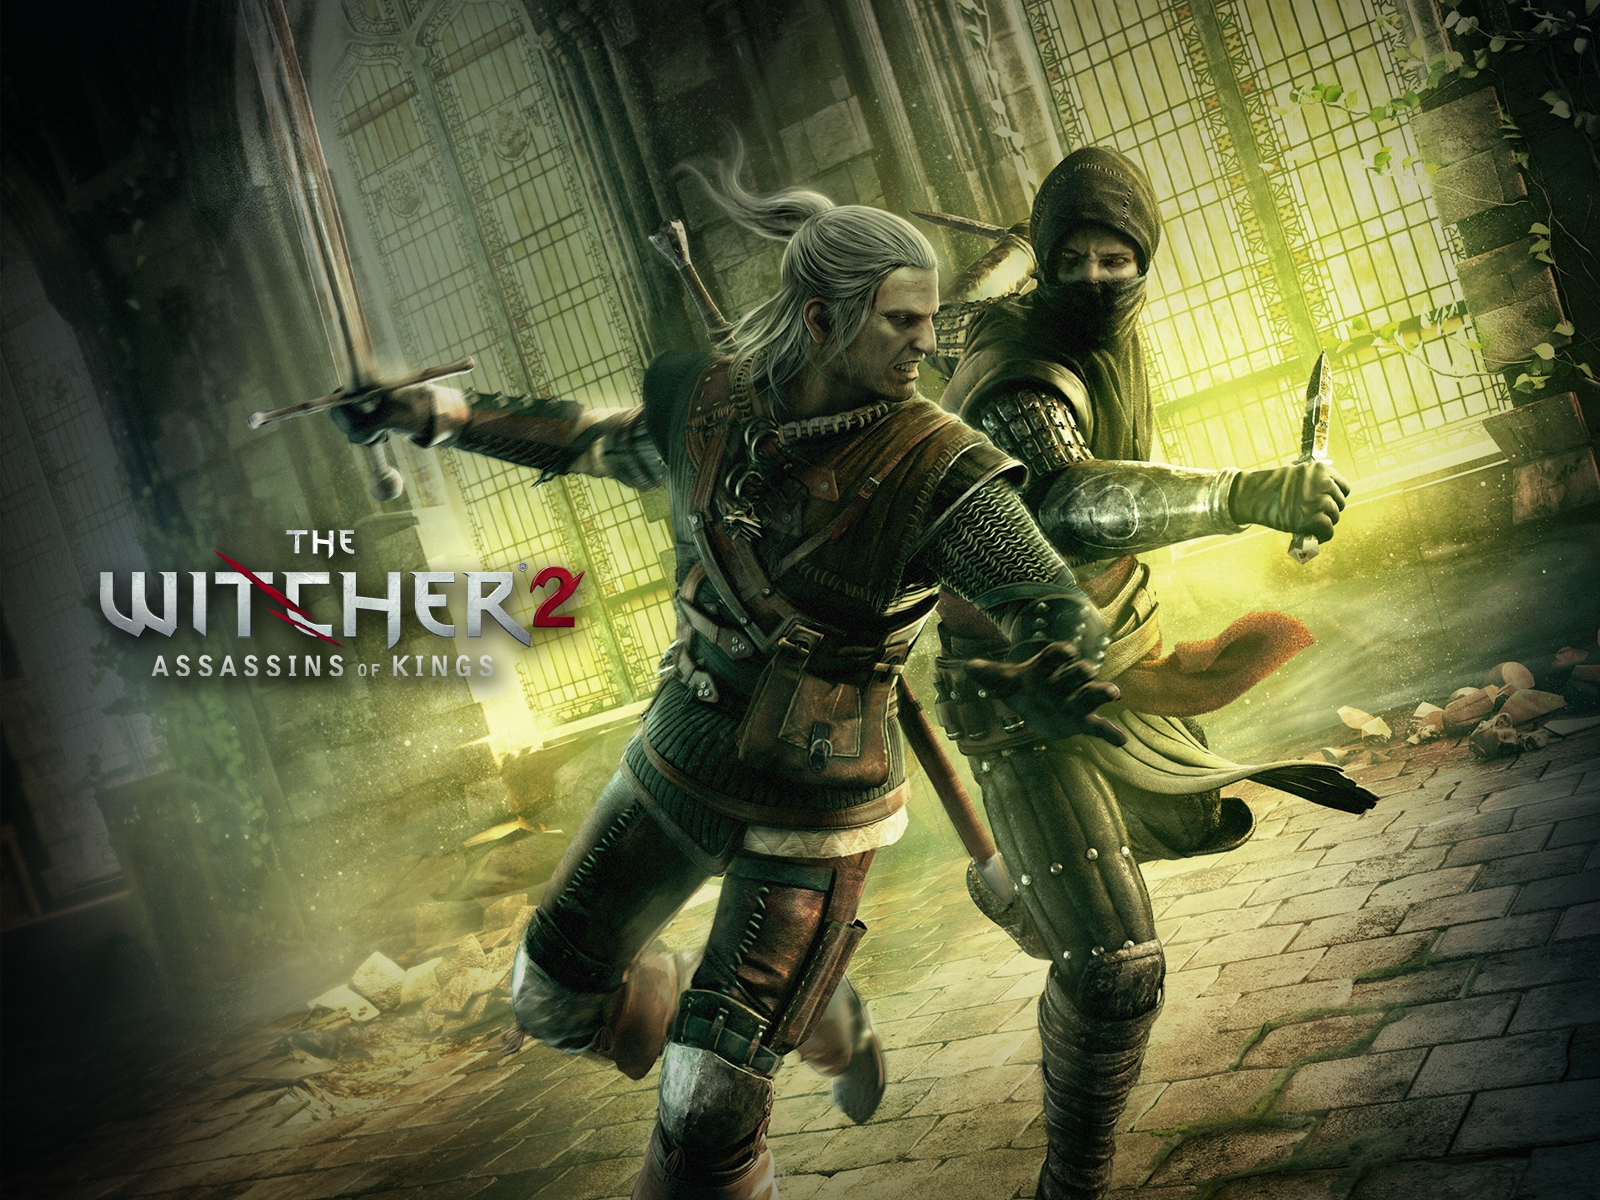 Witcher 2 Alchemy Guide Potions, Oils, and Bombs Witcher